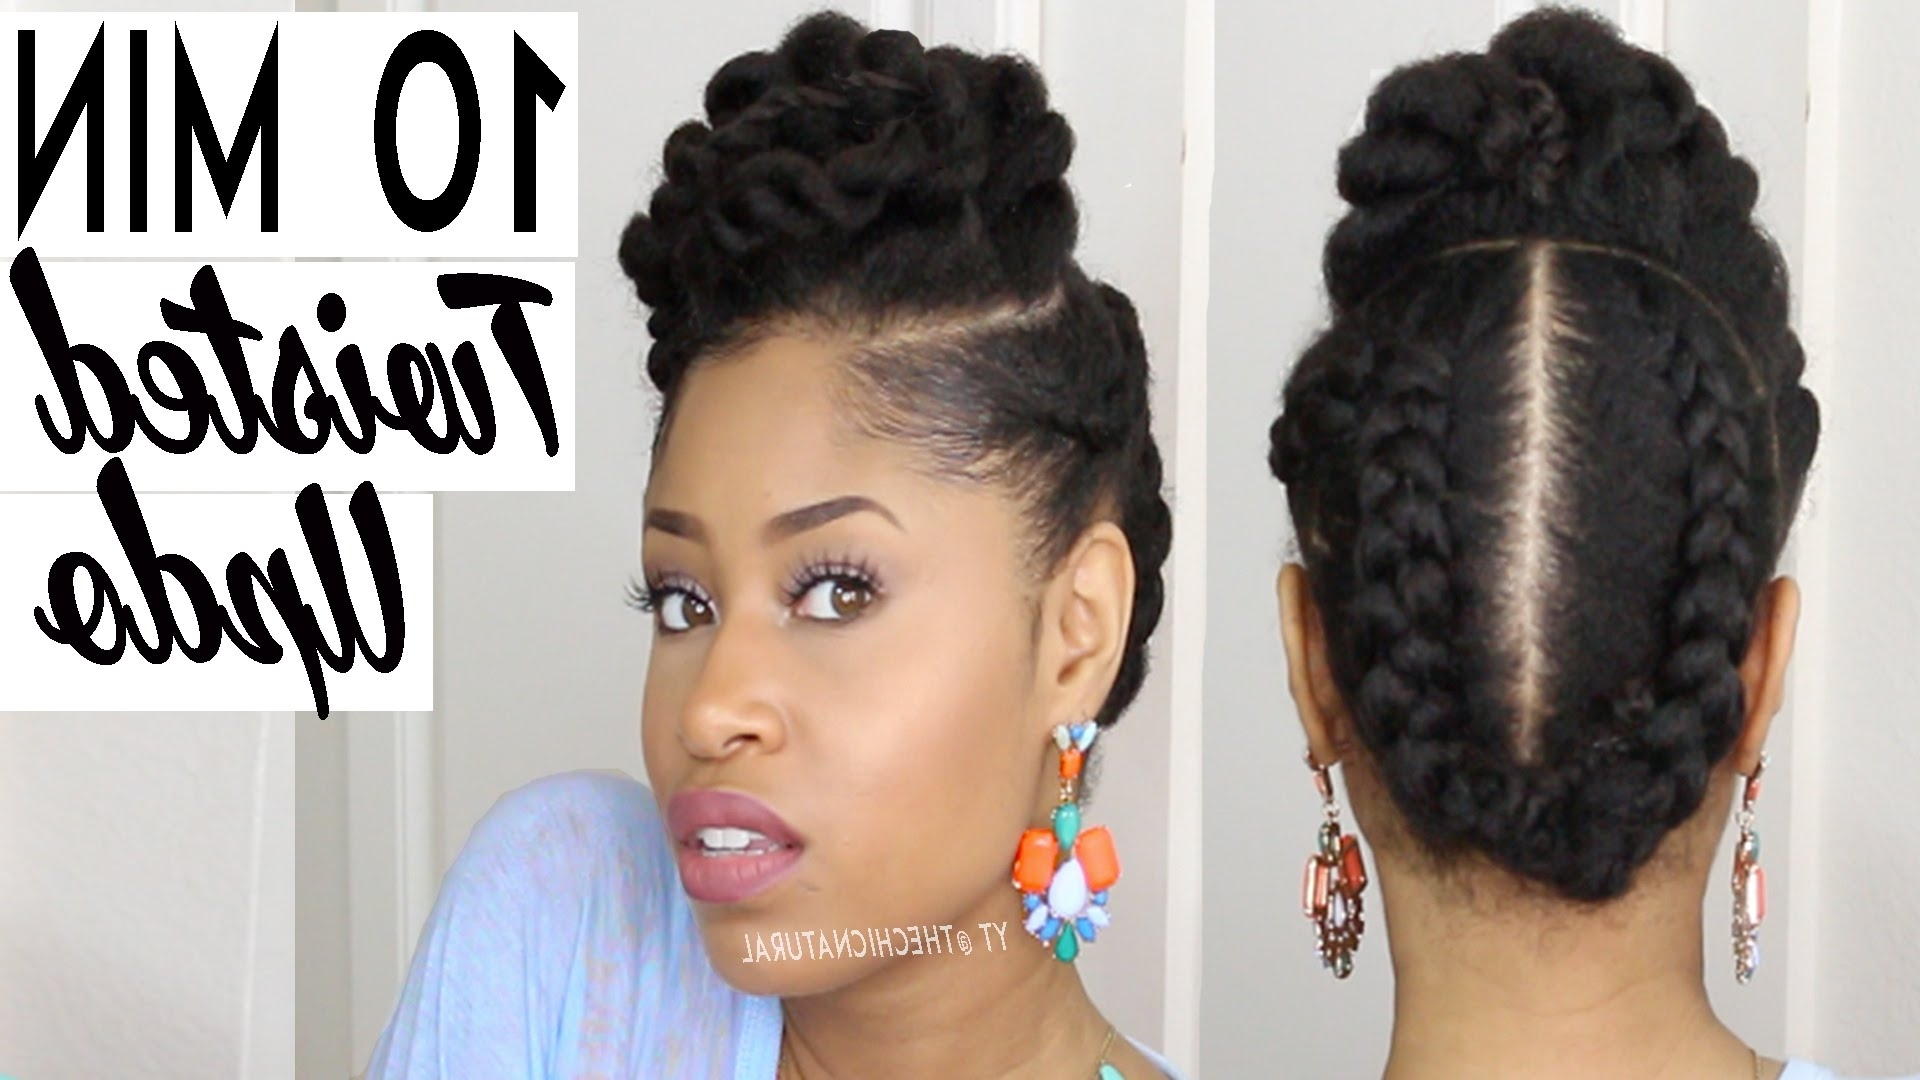 The 10 Minute Twisted Updo | Natural Hairstyle – Youtube Intended For Knot Twist Updo Hairstyles (View 15 of 15)